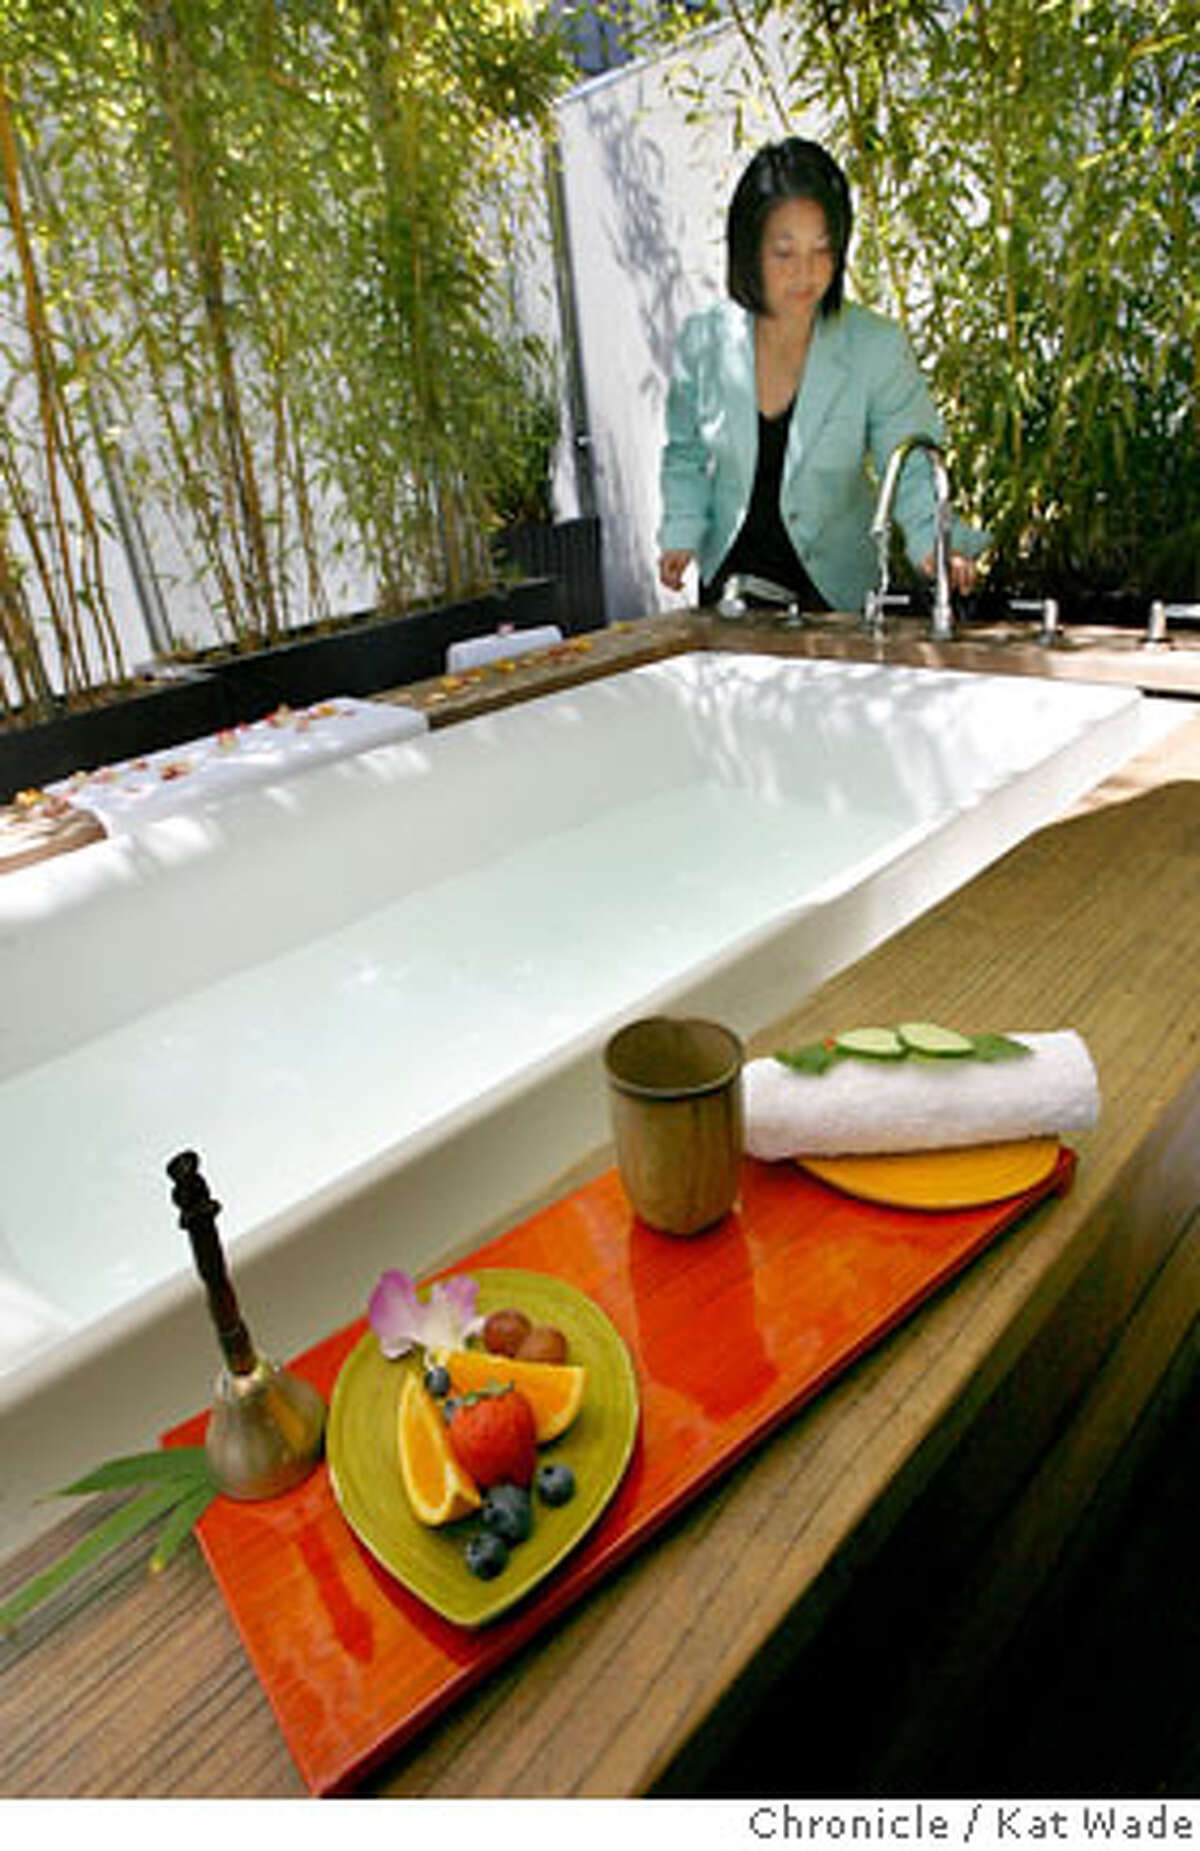 HOTELS_VITALE_108_KW_.jpg On Thursday August 17, 2006 Sharon Oshita, the Spa Vitale manager prepares the tubs on the roof surrounded by bamboo and pampering with an asian style at the Hotel Vitale on Mission Street at the Embarcadero. Kat Wade/The Chronicle **(Subject) cq